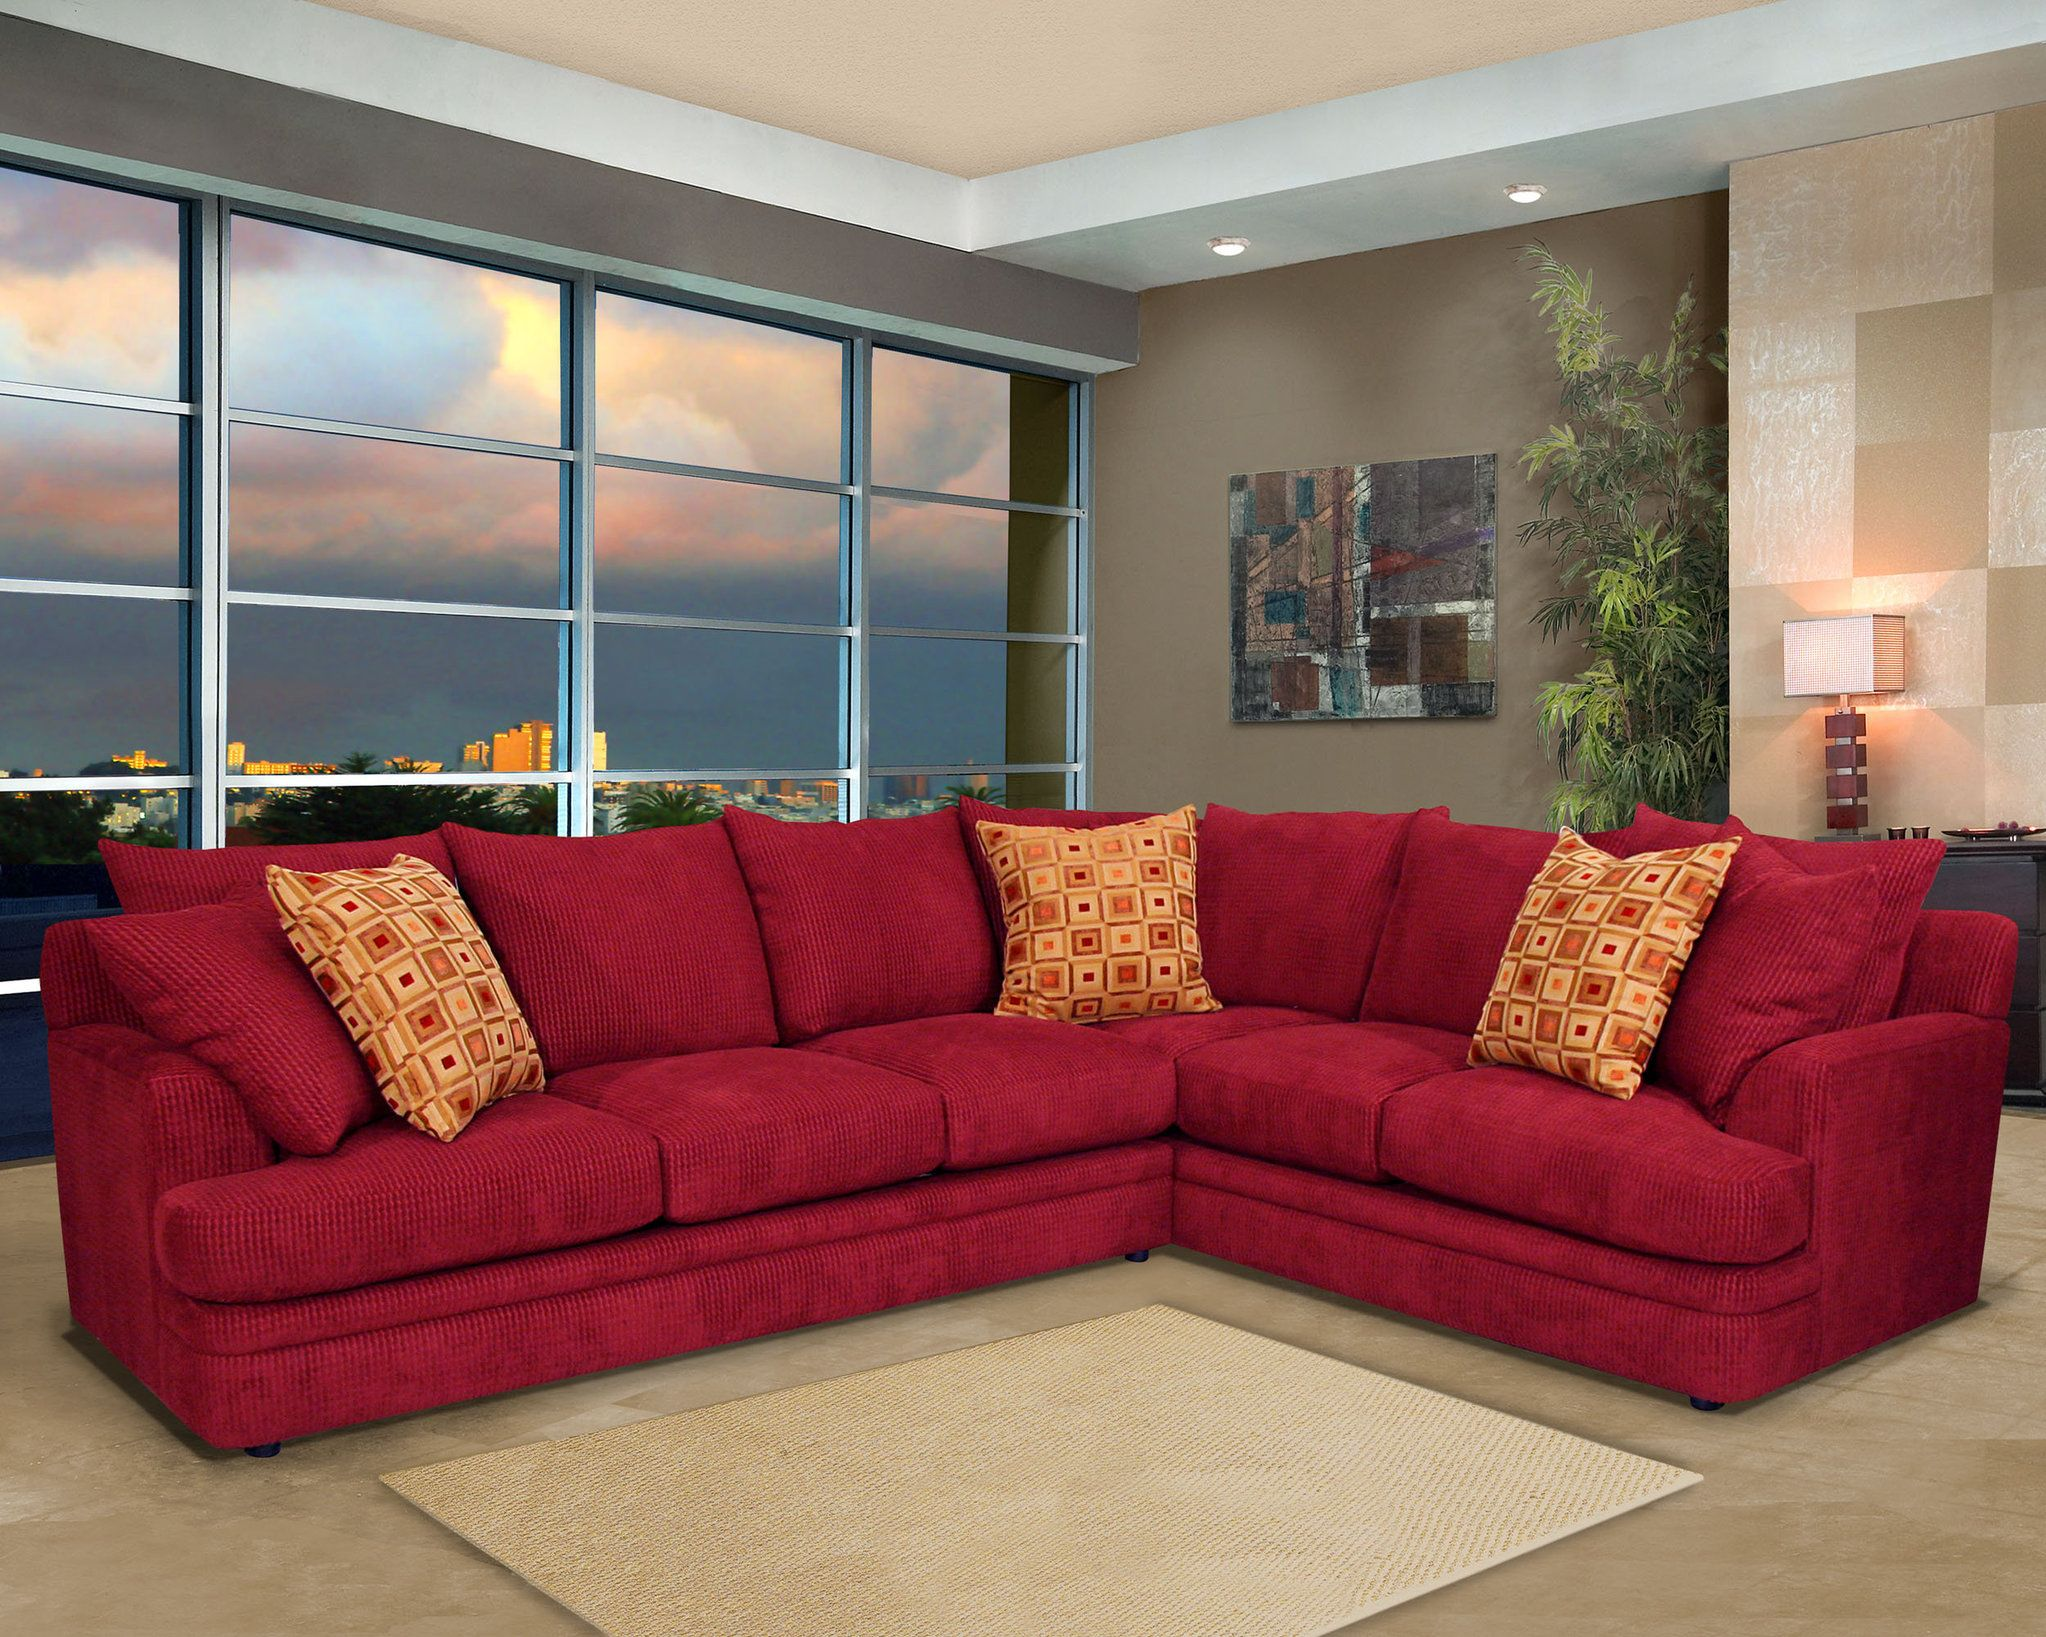 Designing Around A Red Couch Bing Images With Images Cheap